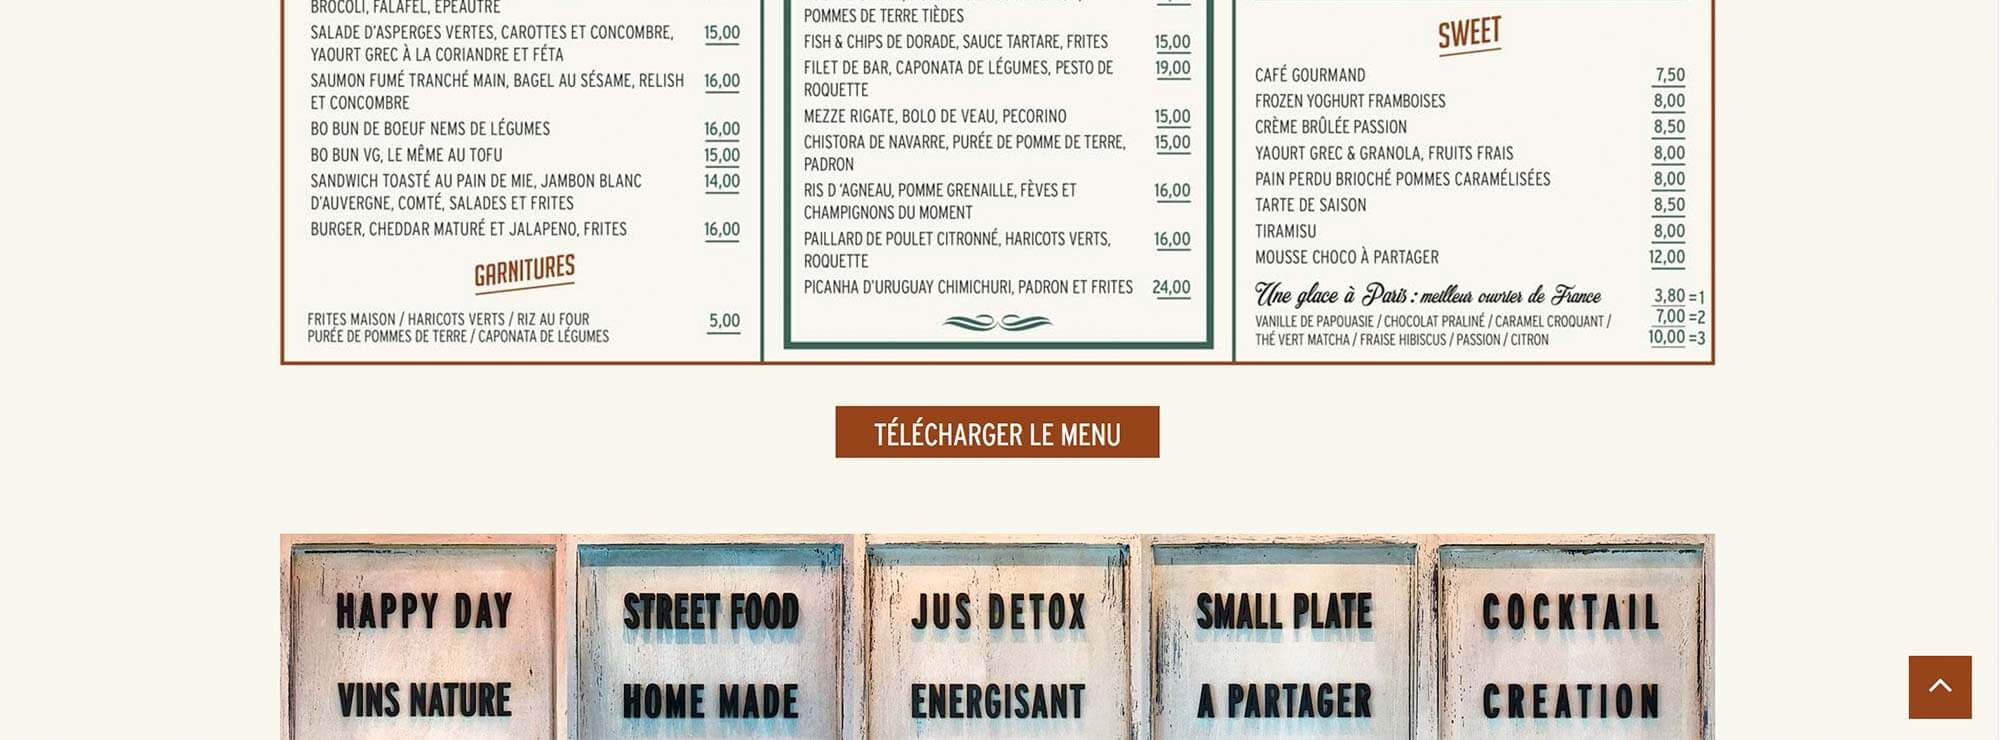 07.comptoir home page menu site.jpg